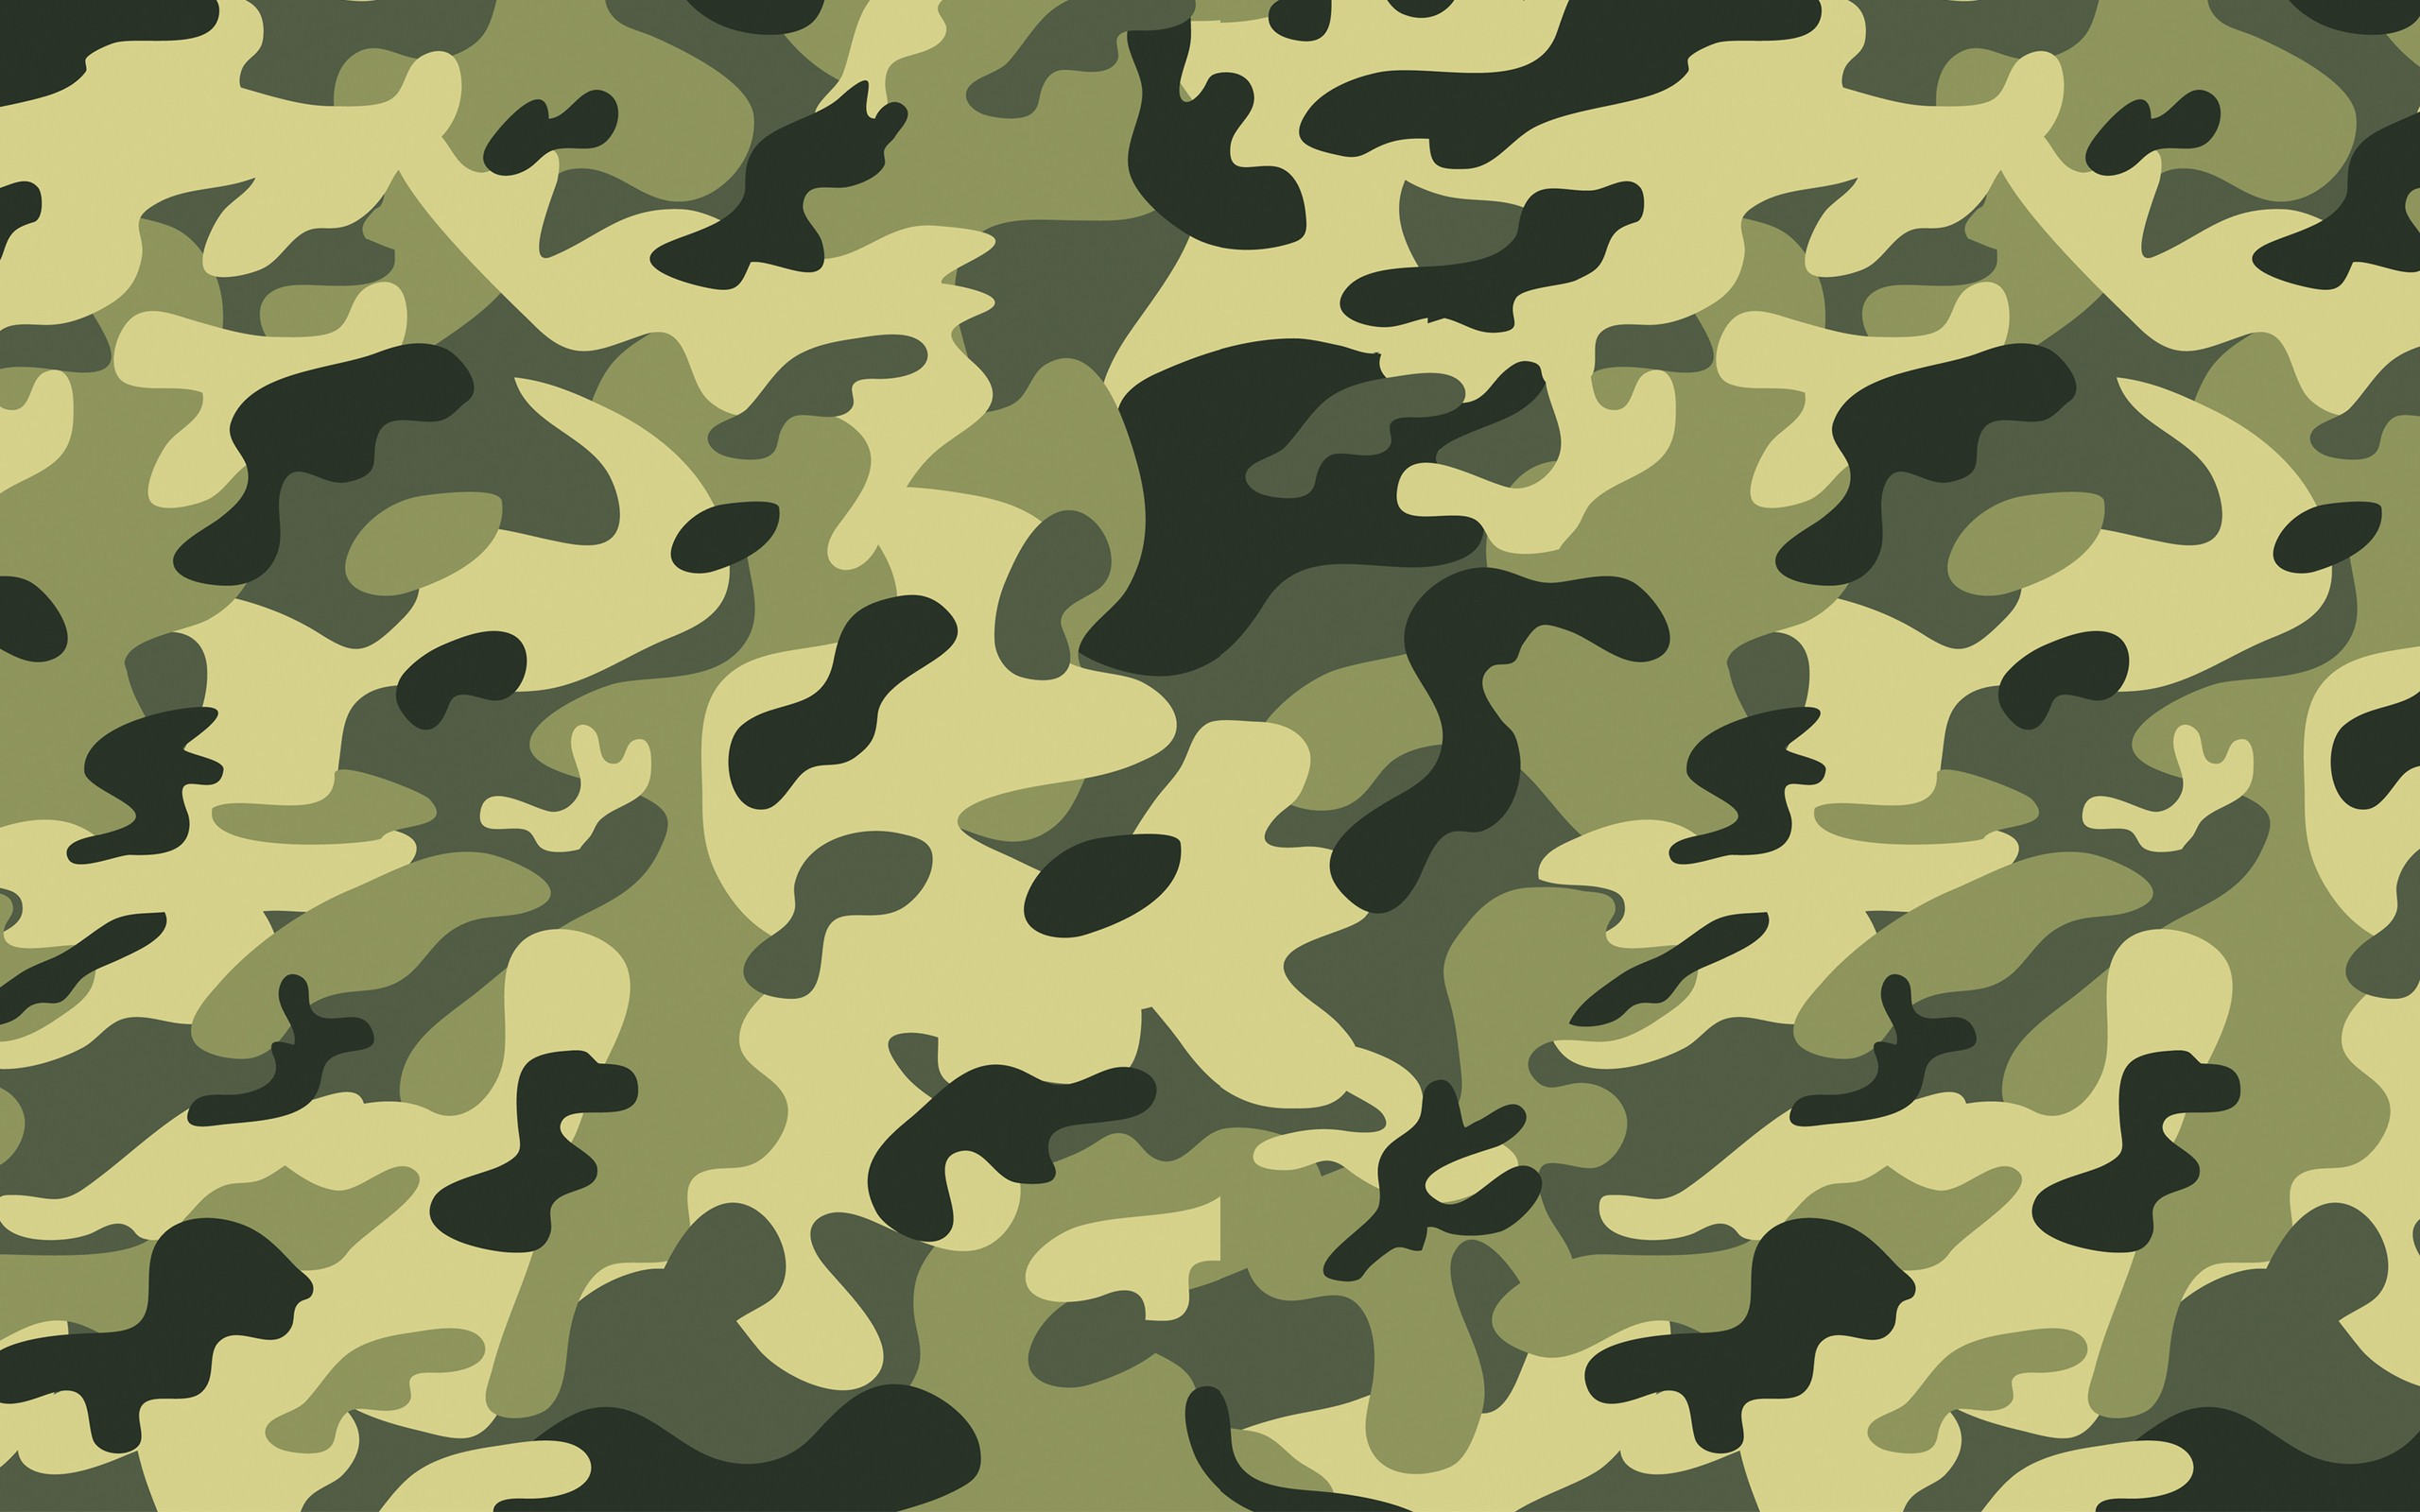 Green Minimalistic Military Camouflage Backgrounds